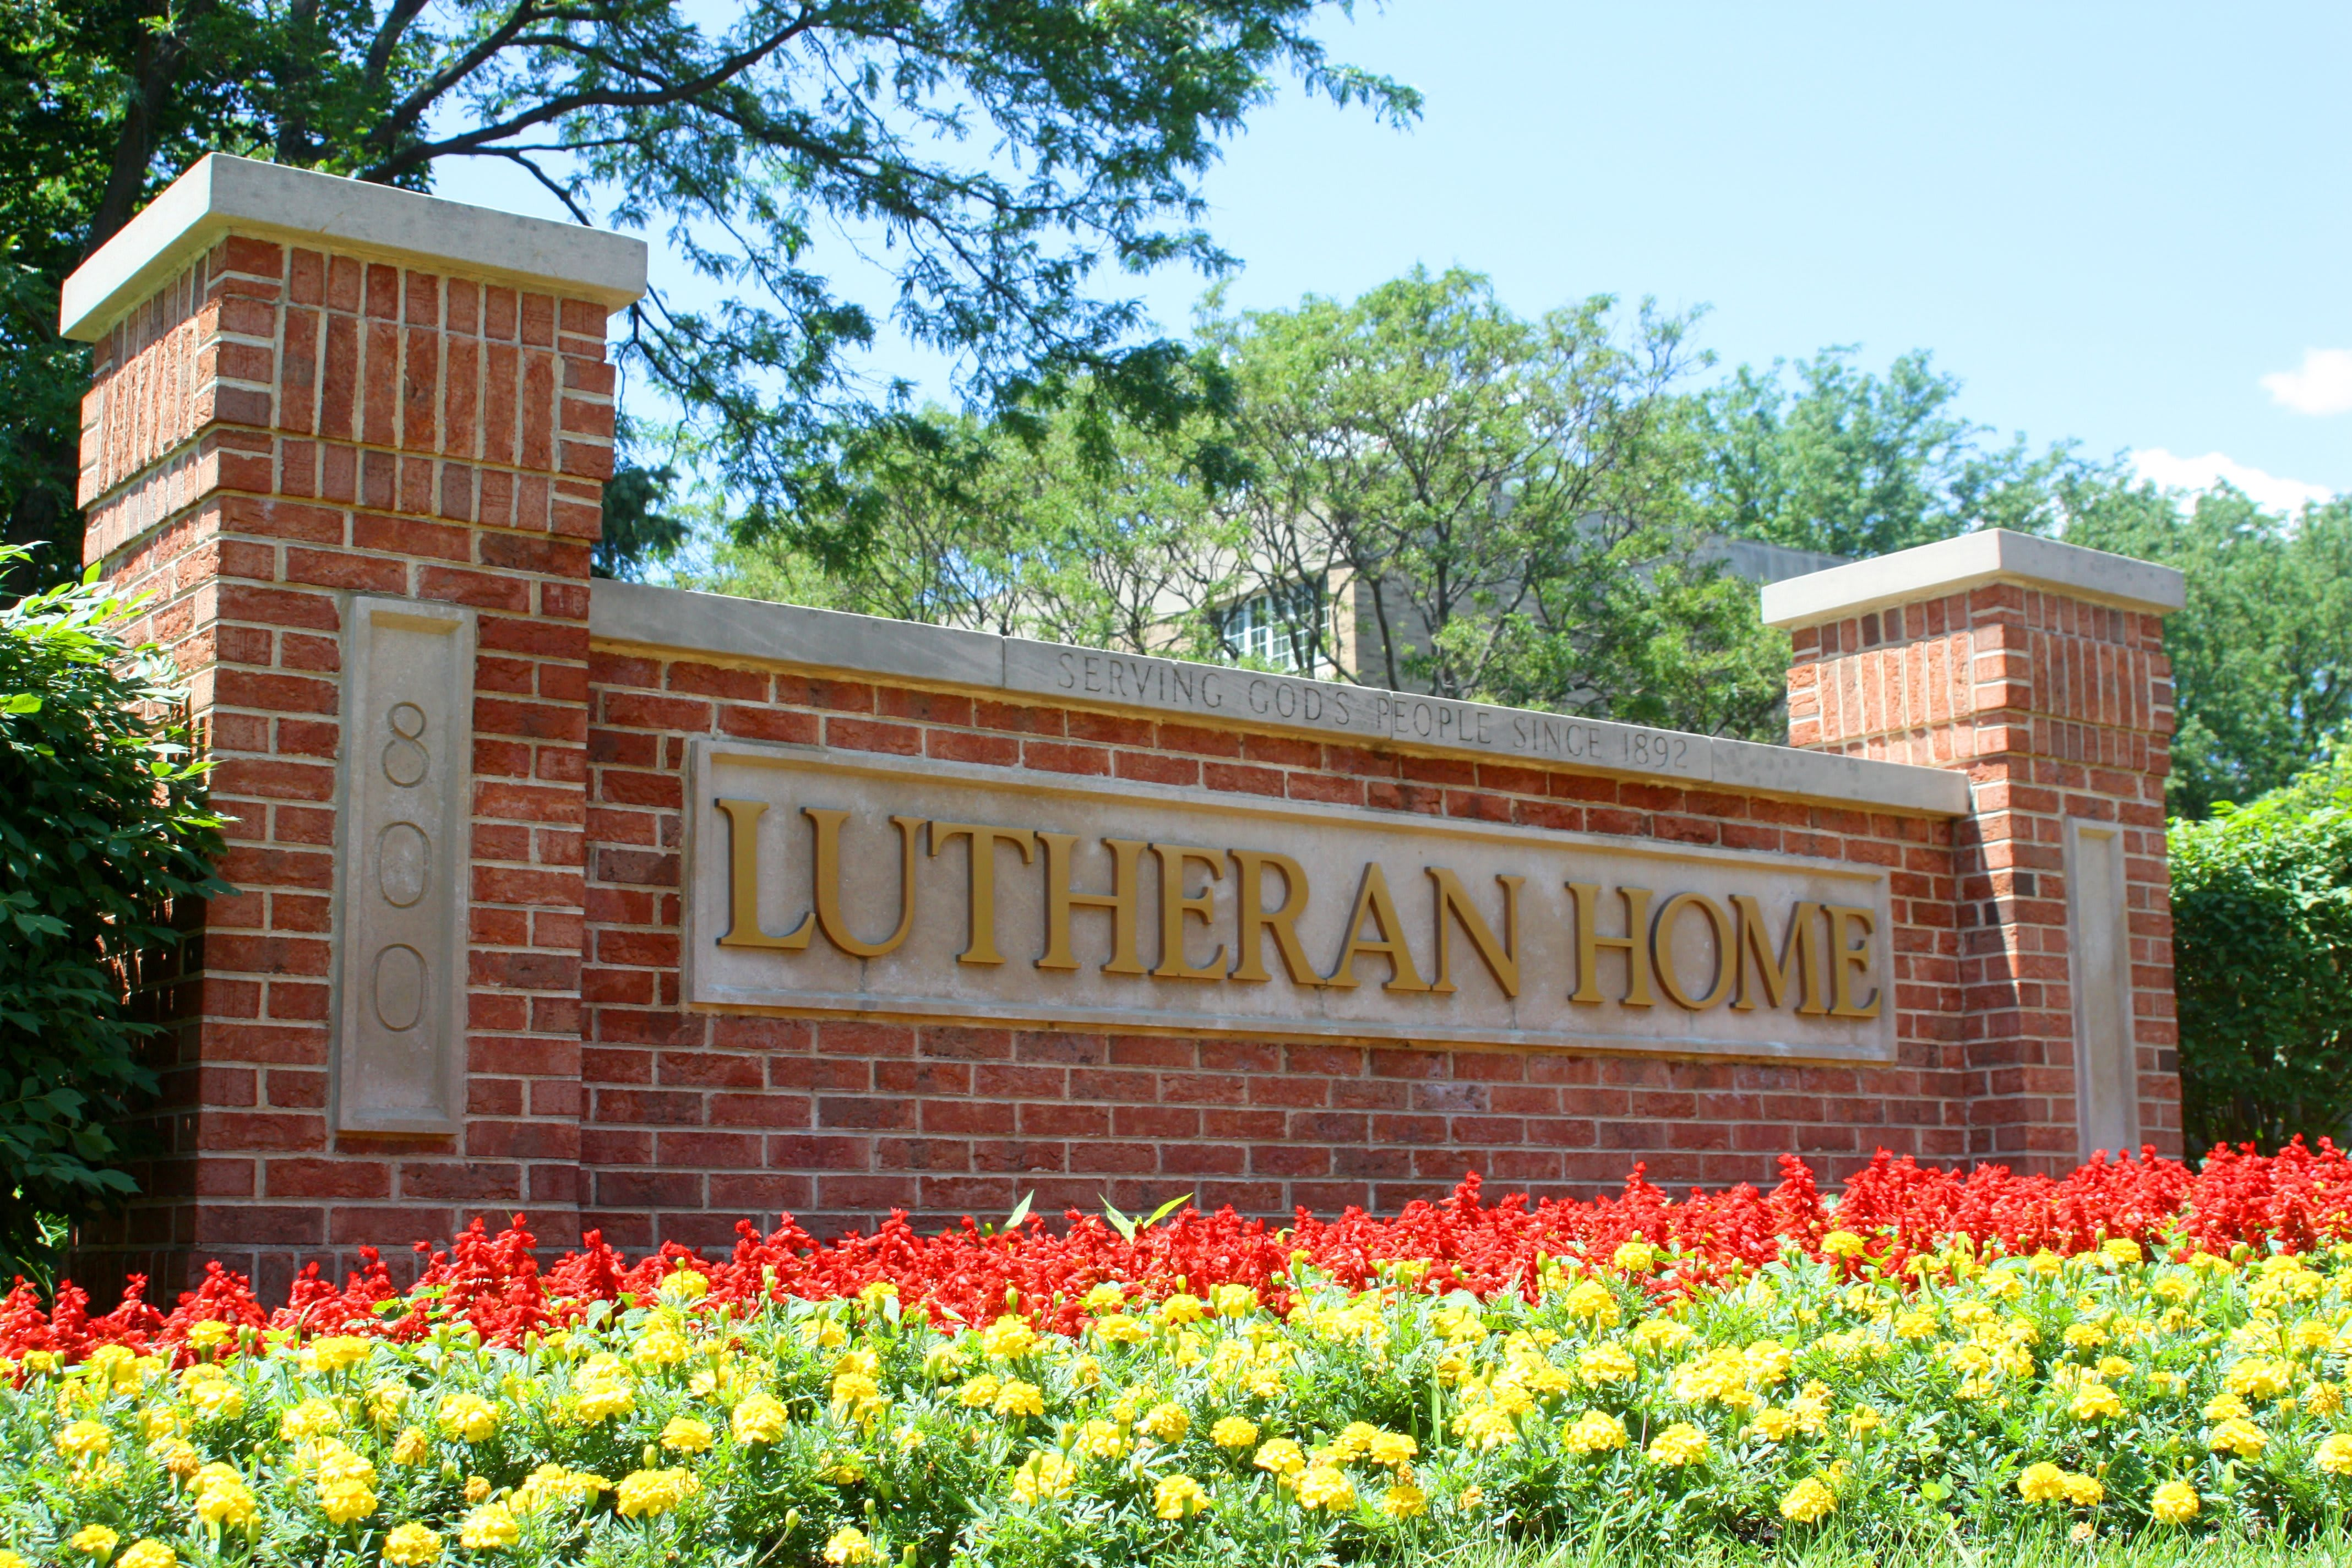 Photo 1 of Lutheran Home